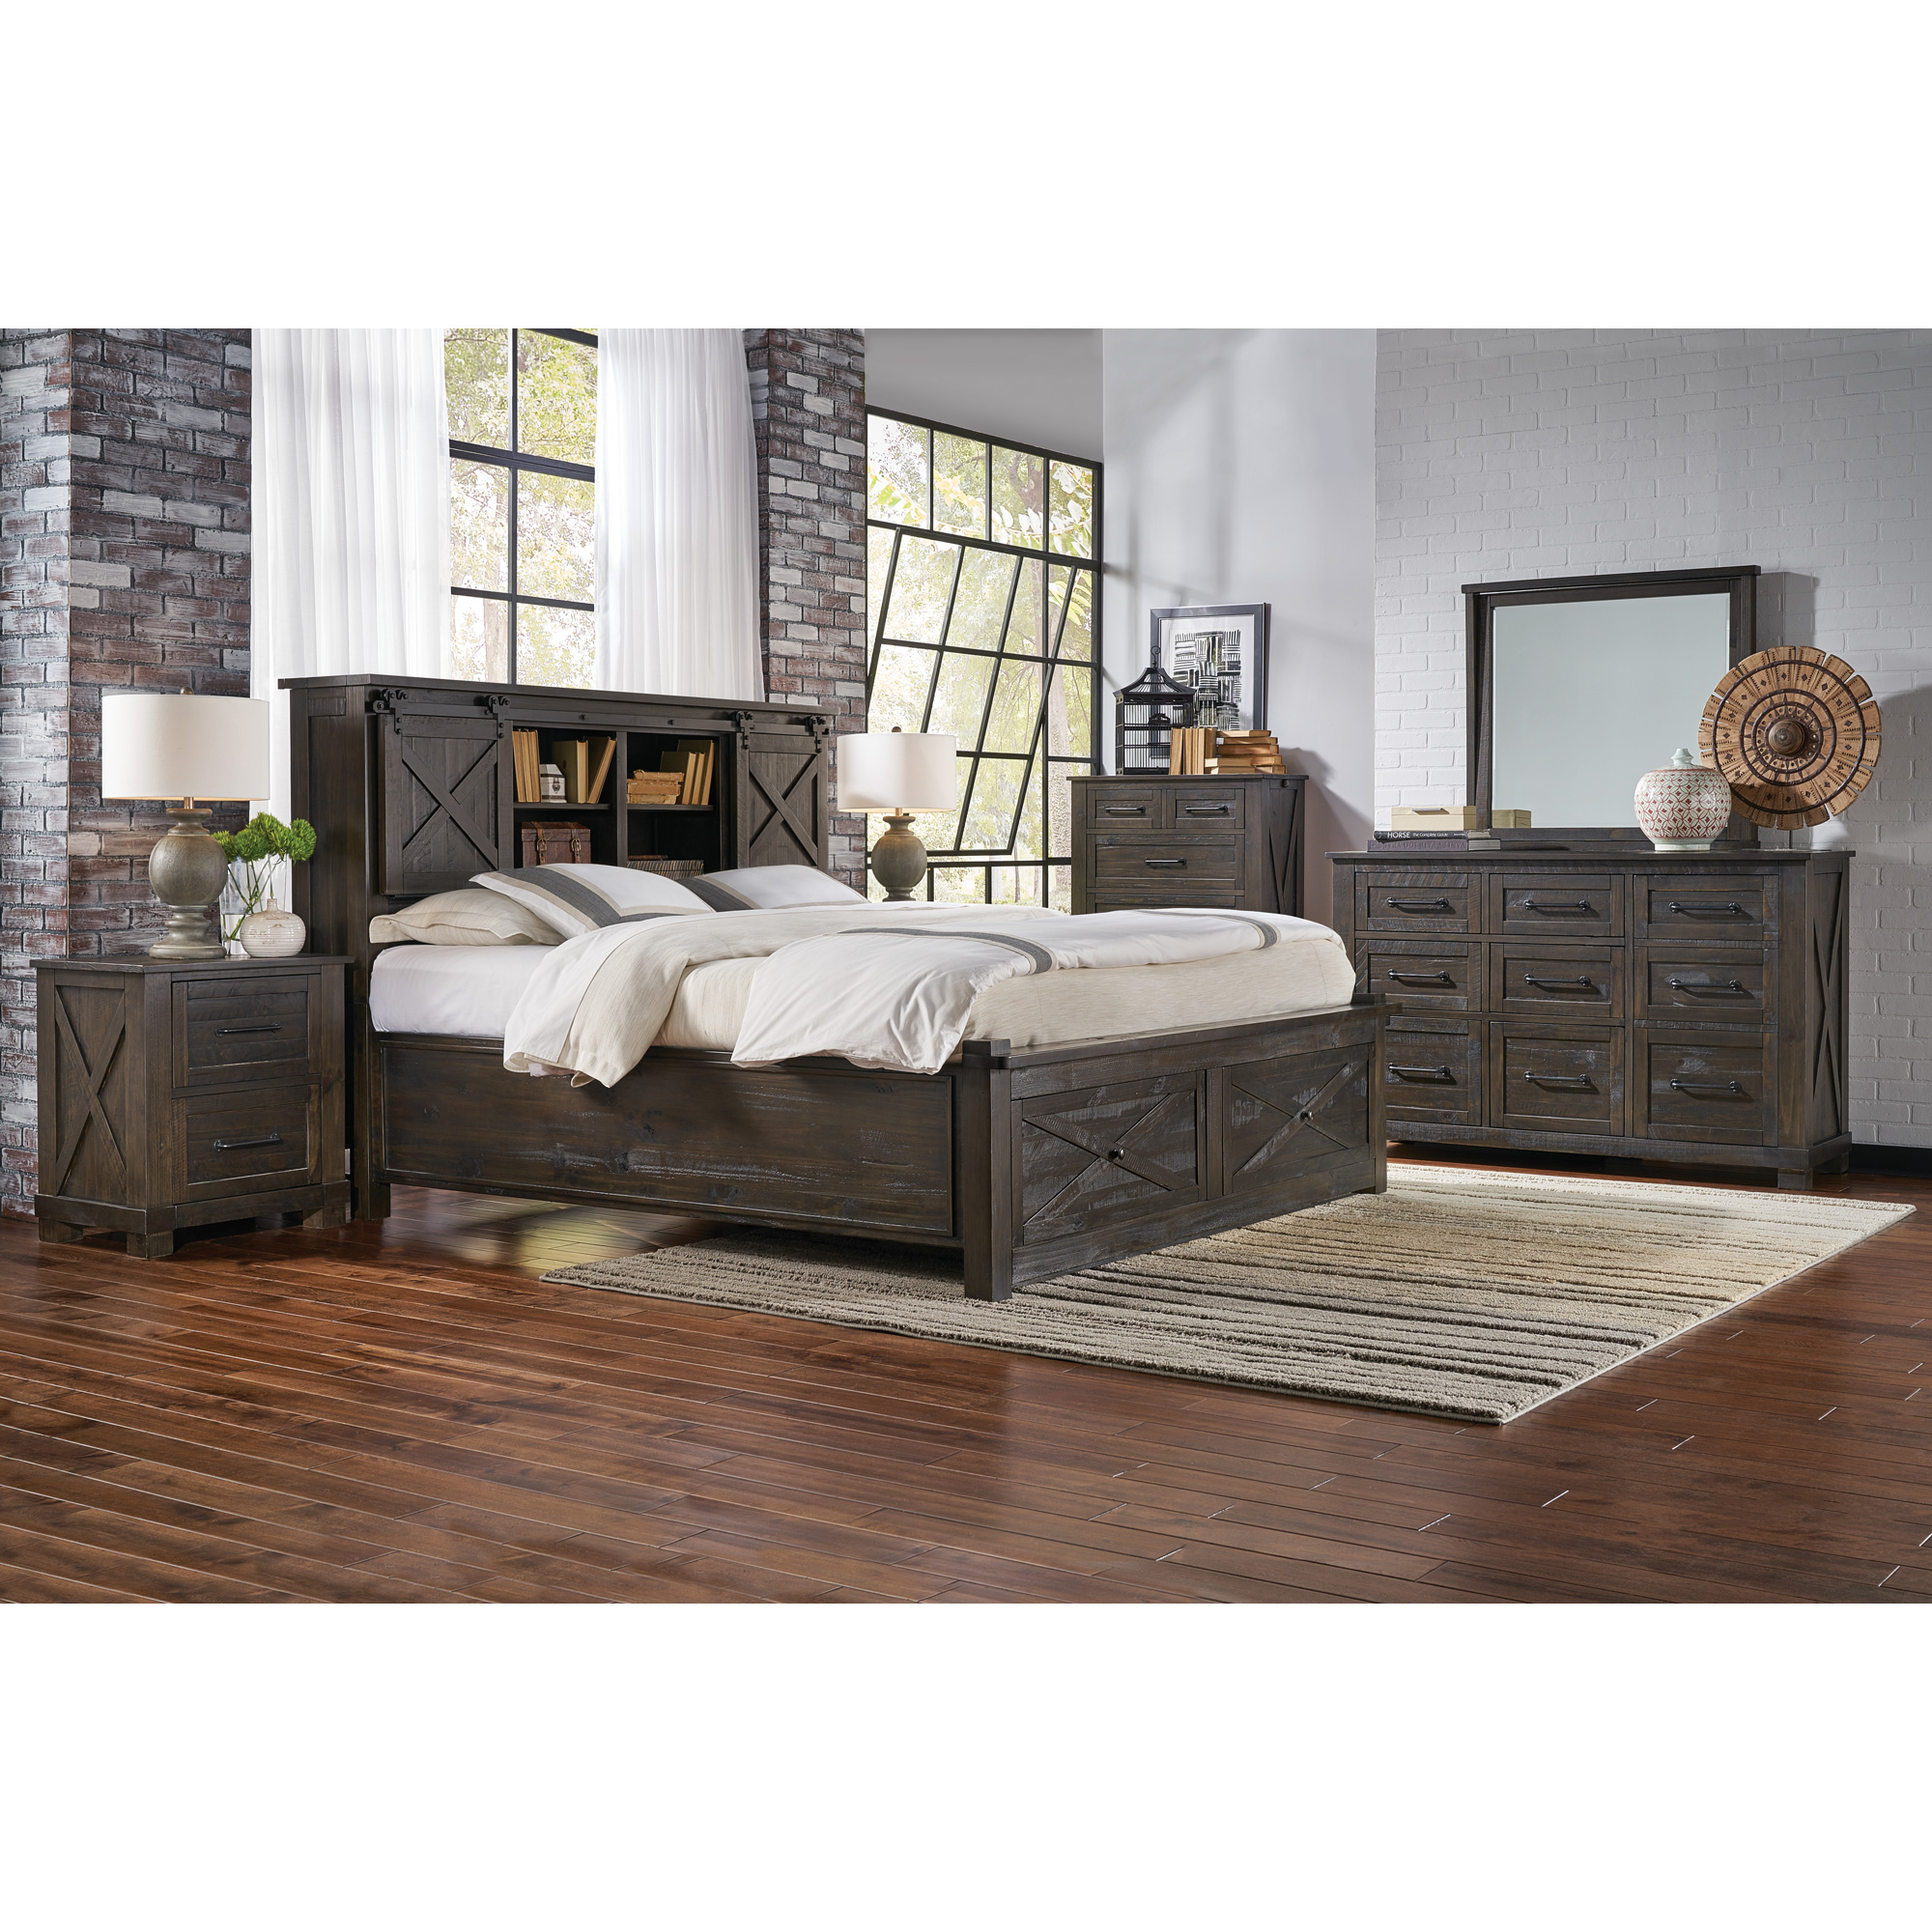 America | Sun Valley Charcoal Queen Storage Bed